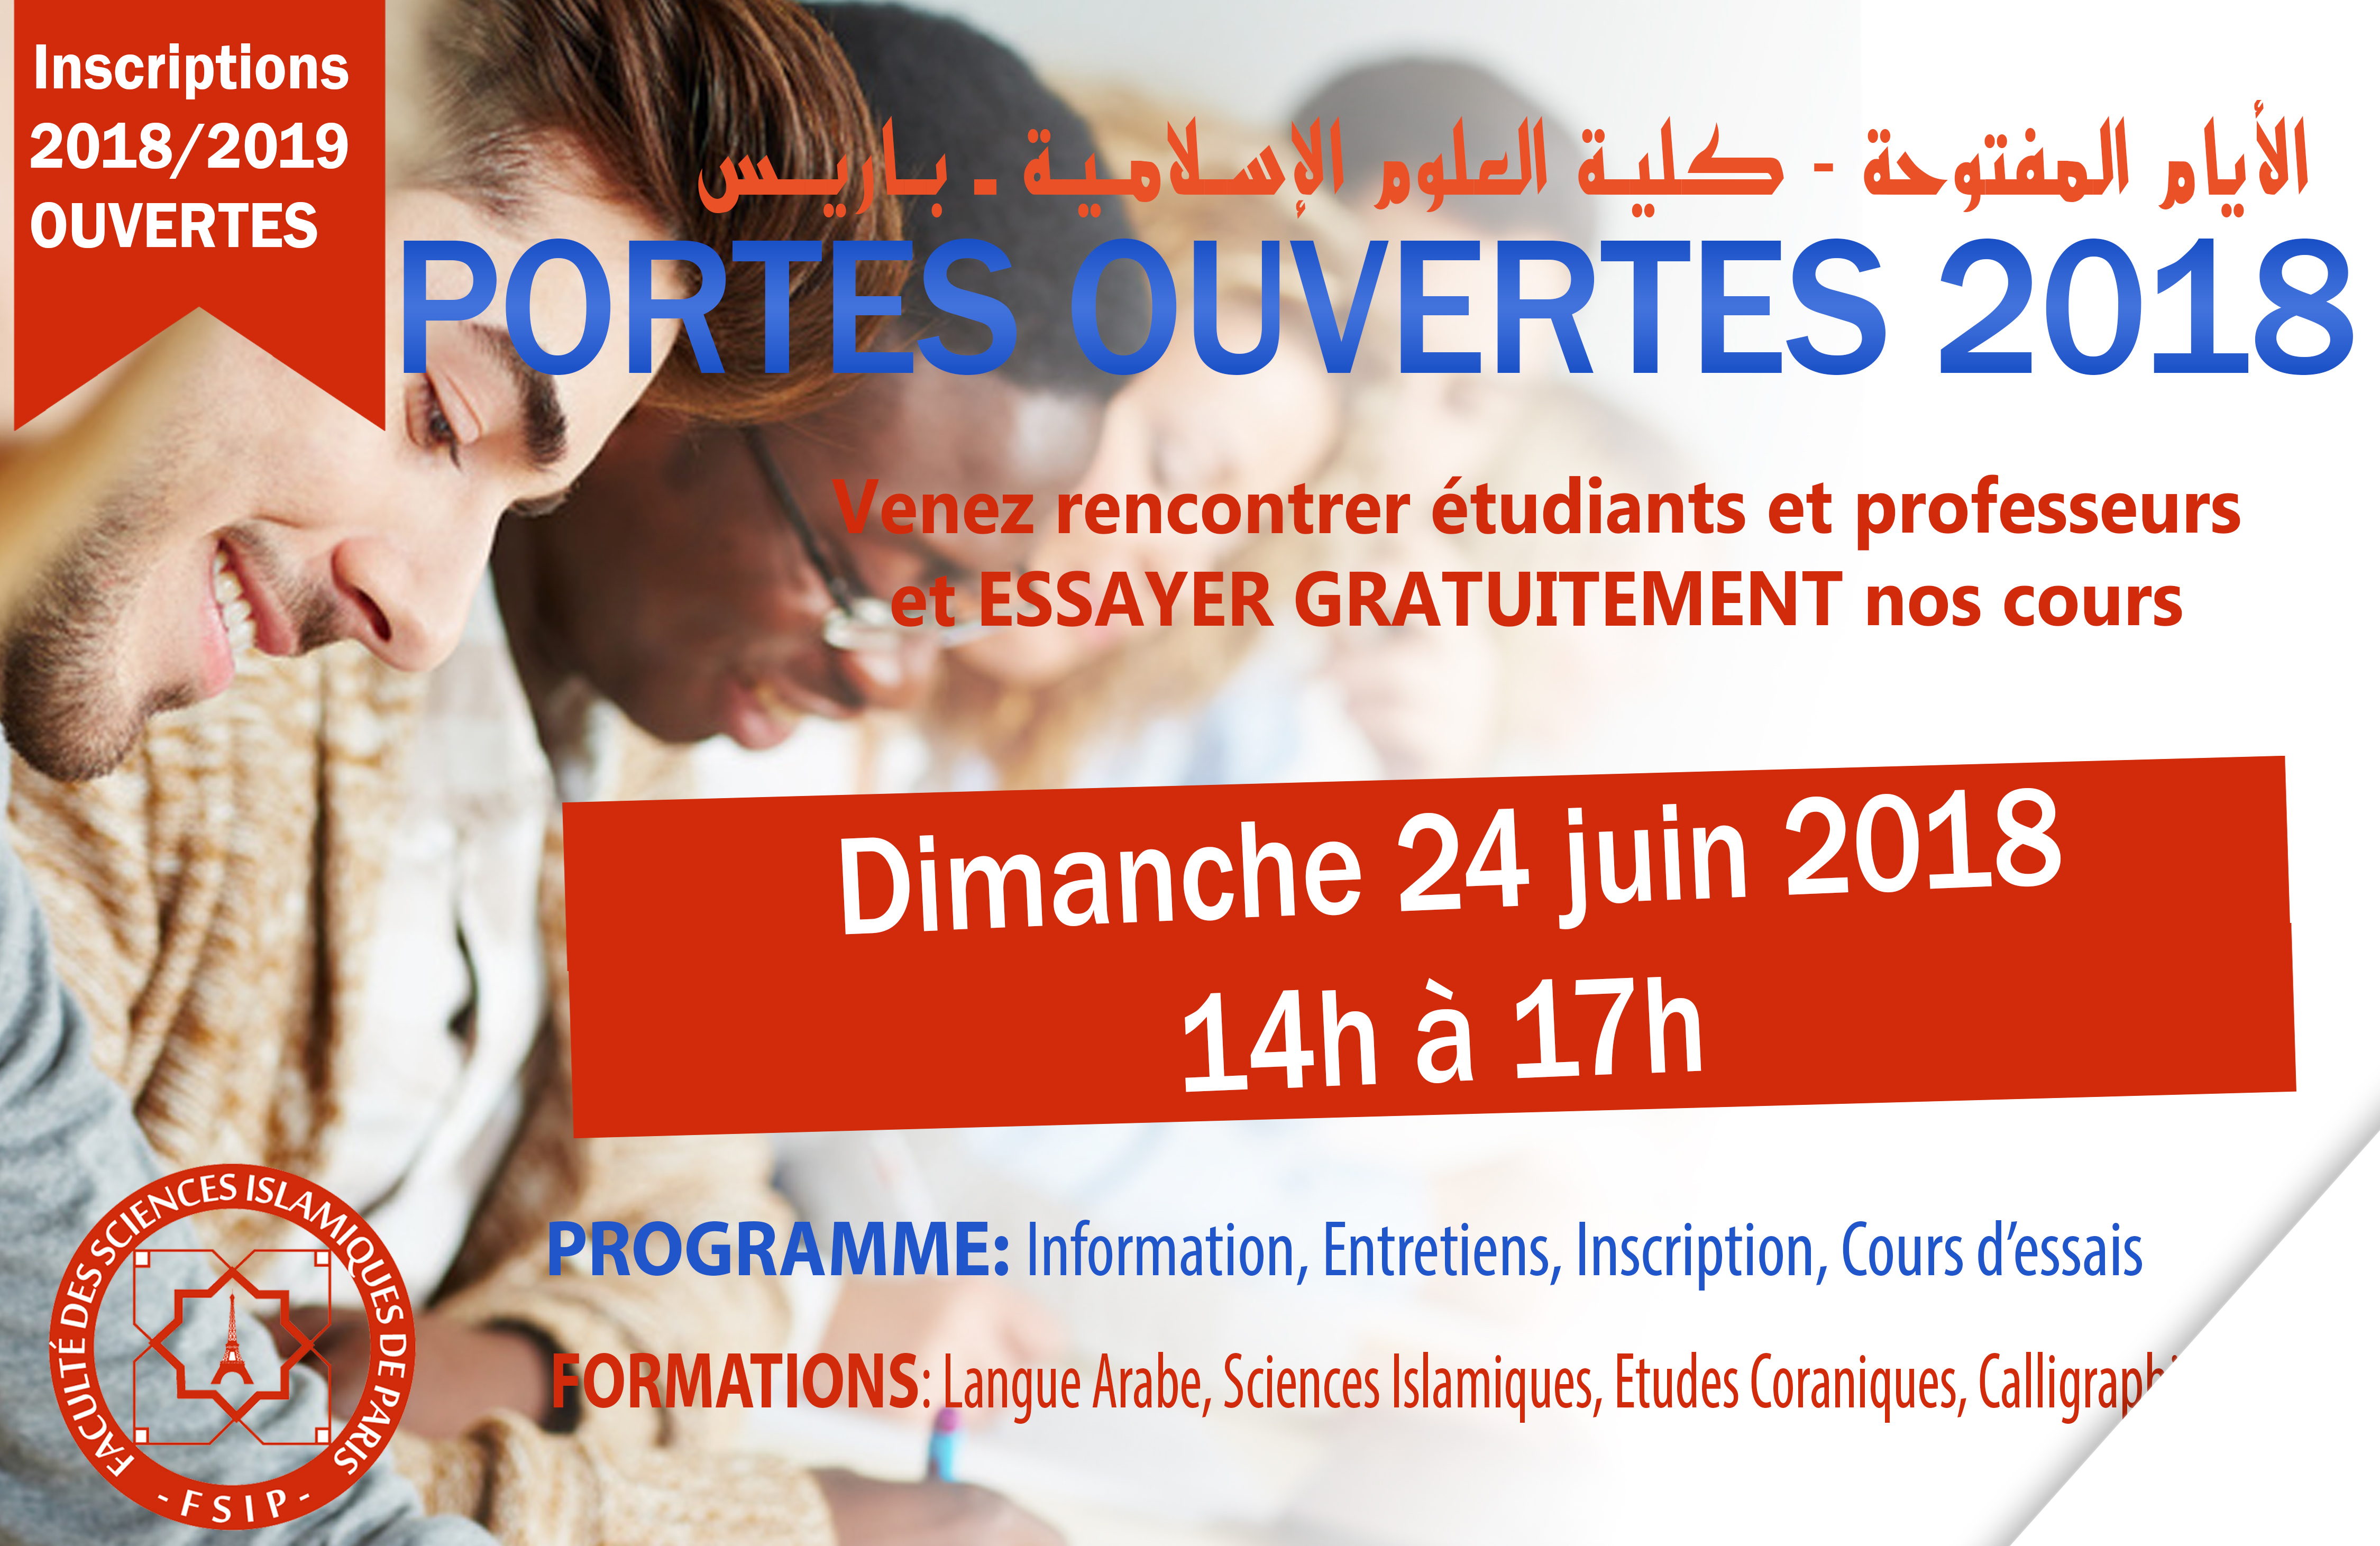 https://www.saphirnews.com/agenda/Faculte-Islamique-de-Paris-Journee-portes-ouvertes_ae596200.html